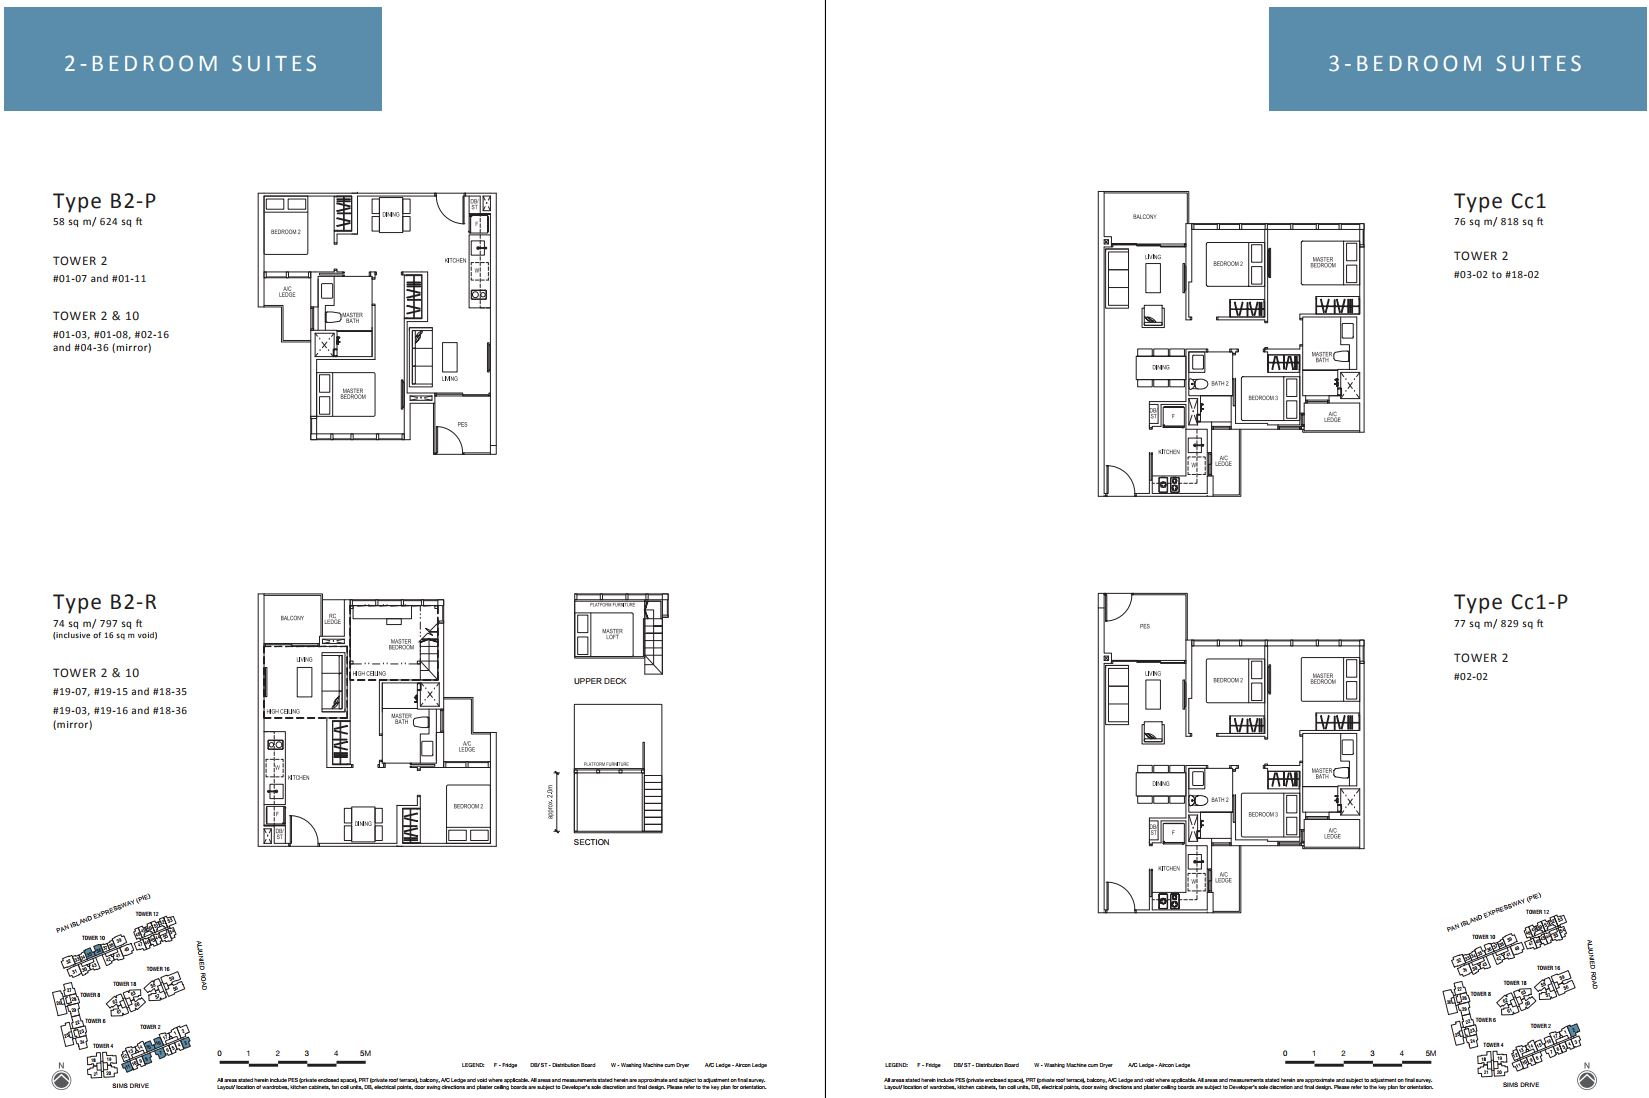 Sims Urban Oasis FloorPlan - 2 & 3 Bedroom Suites